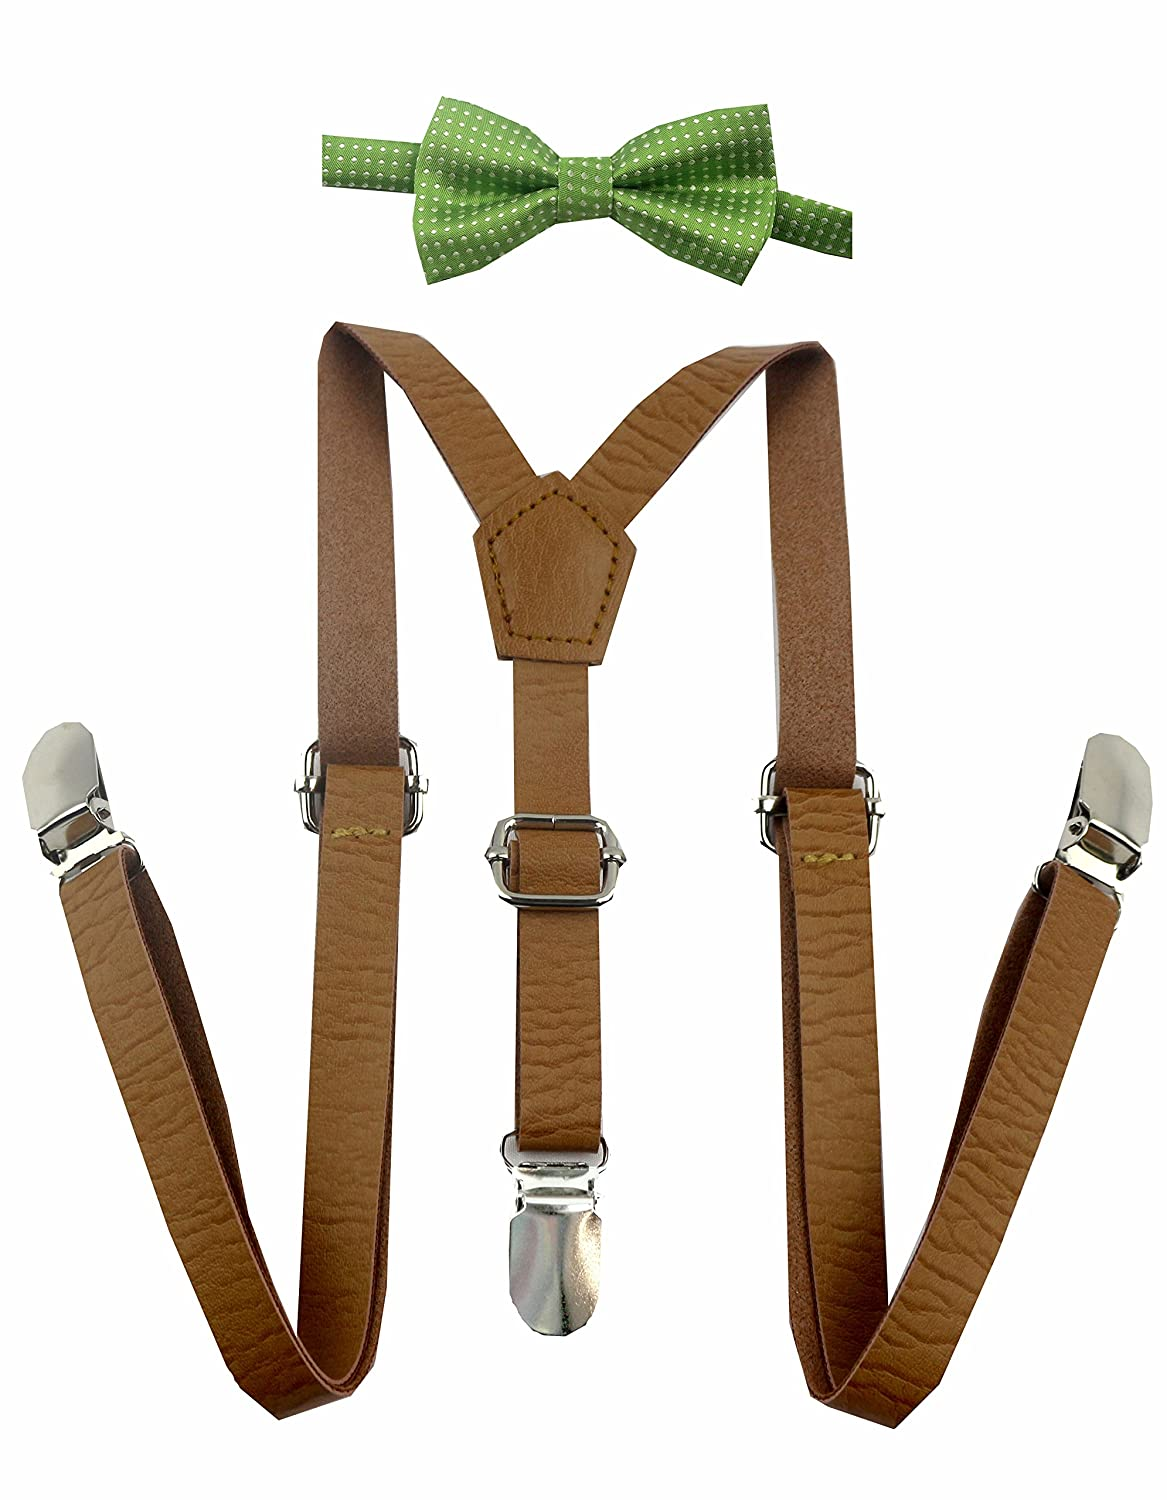 Skinny Leather Suspenders with Bow Tie for Baby, Toddler, Kids and Children Boy and Children (Light Green White Polka Dot Bow)